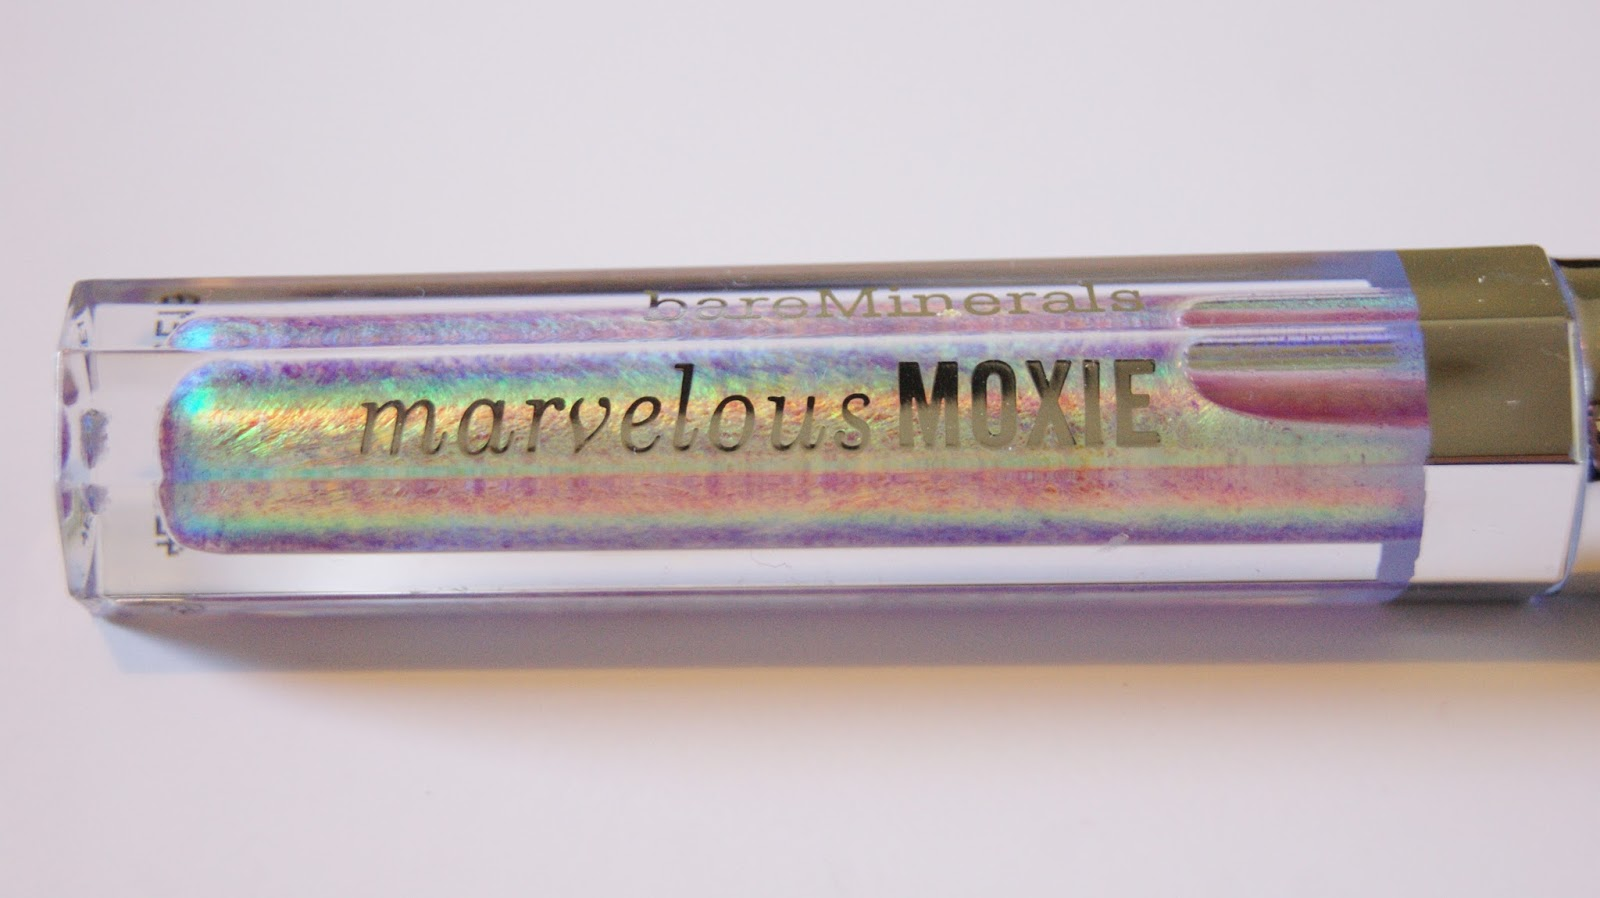 Bare Minerals Marvelous Moxie Lipgloss in Hypnotist